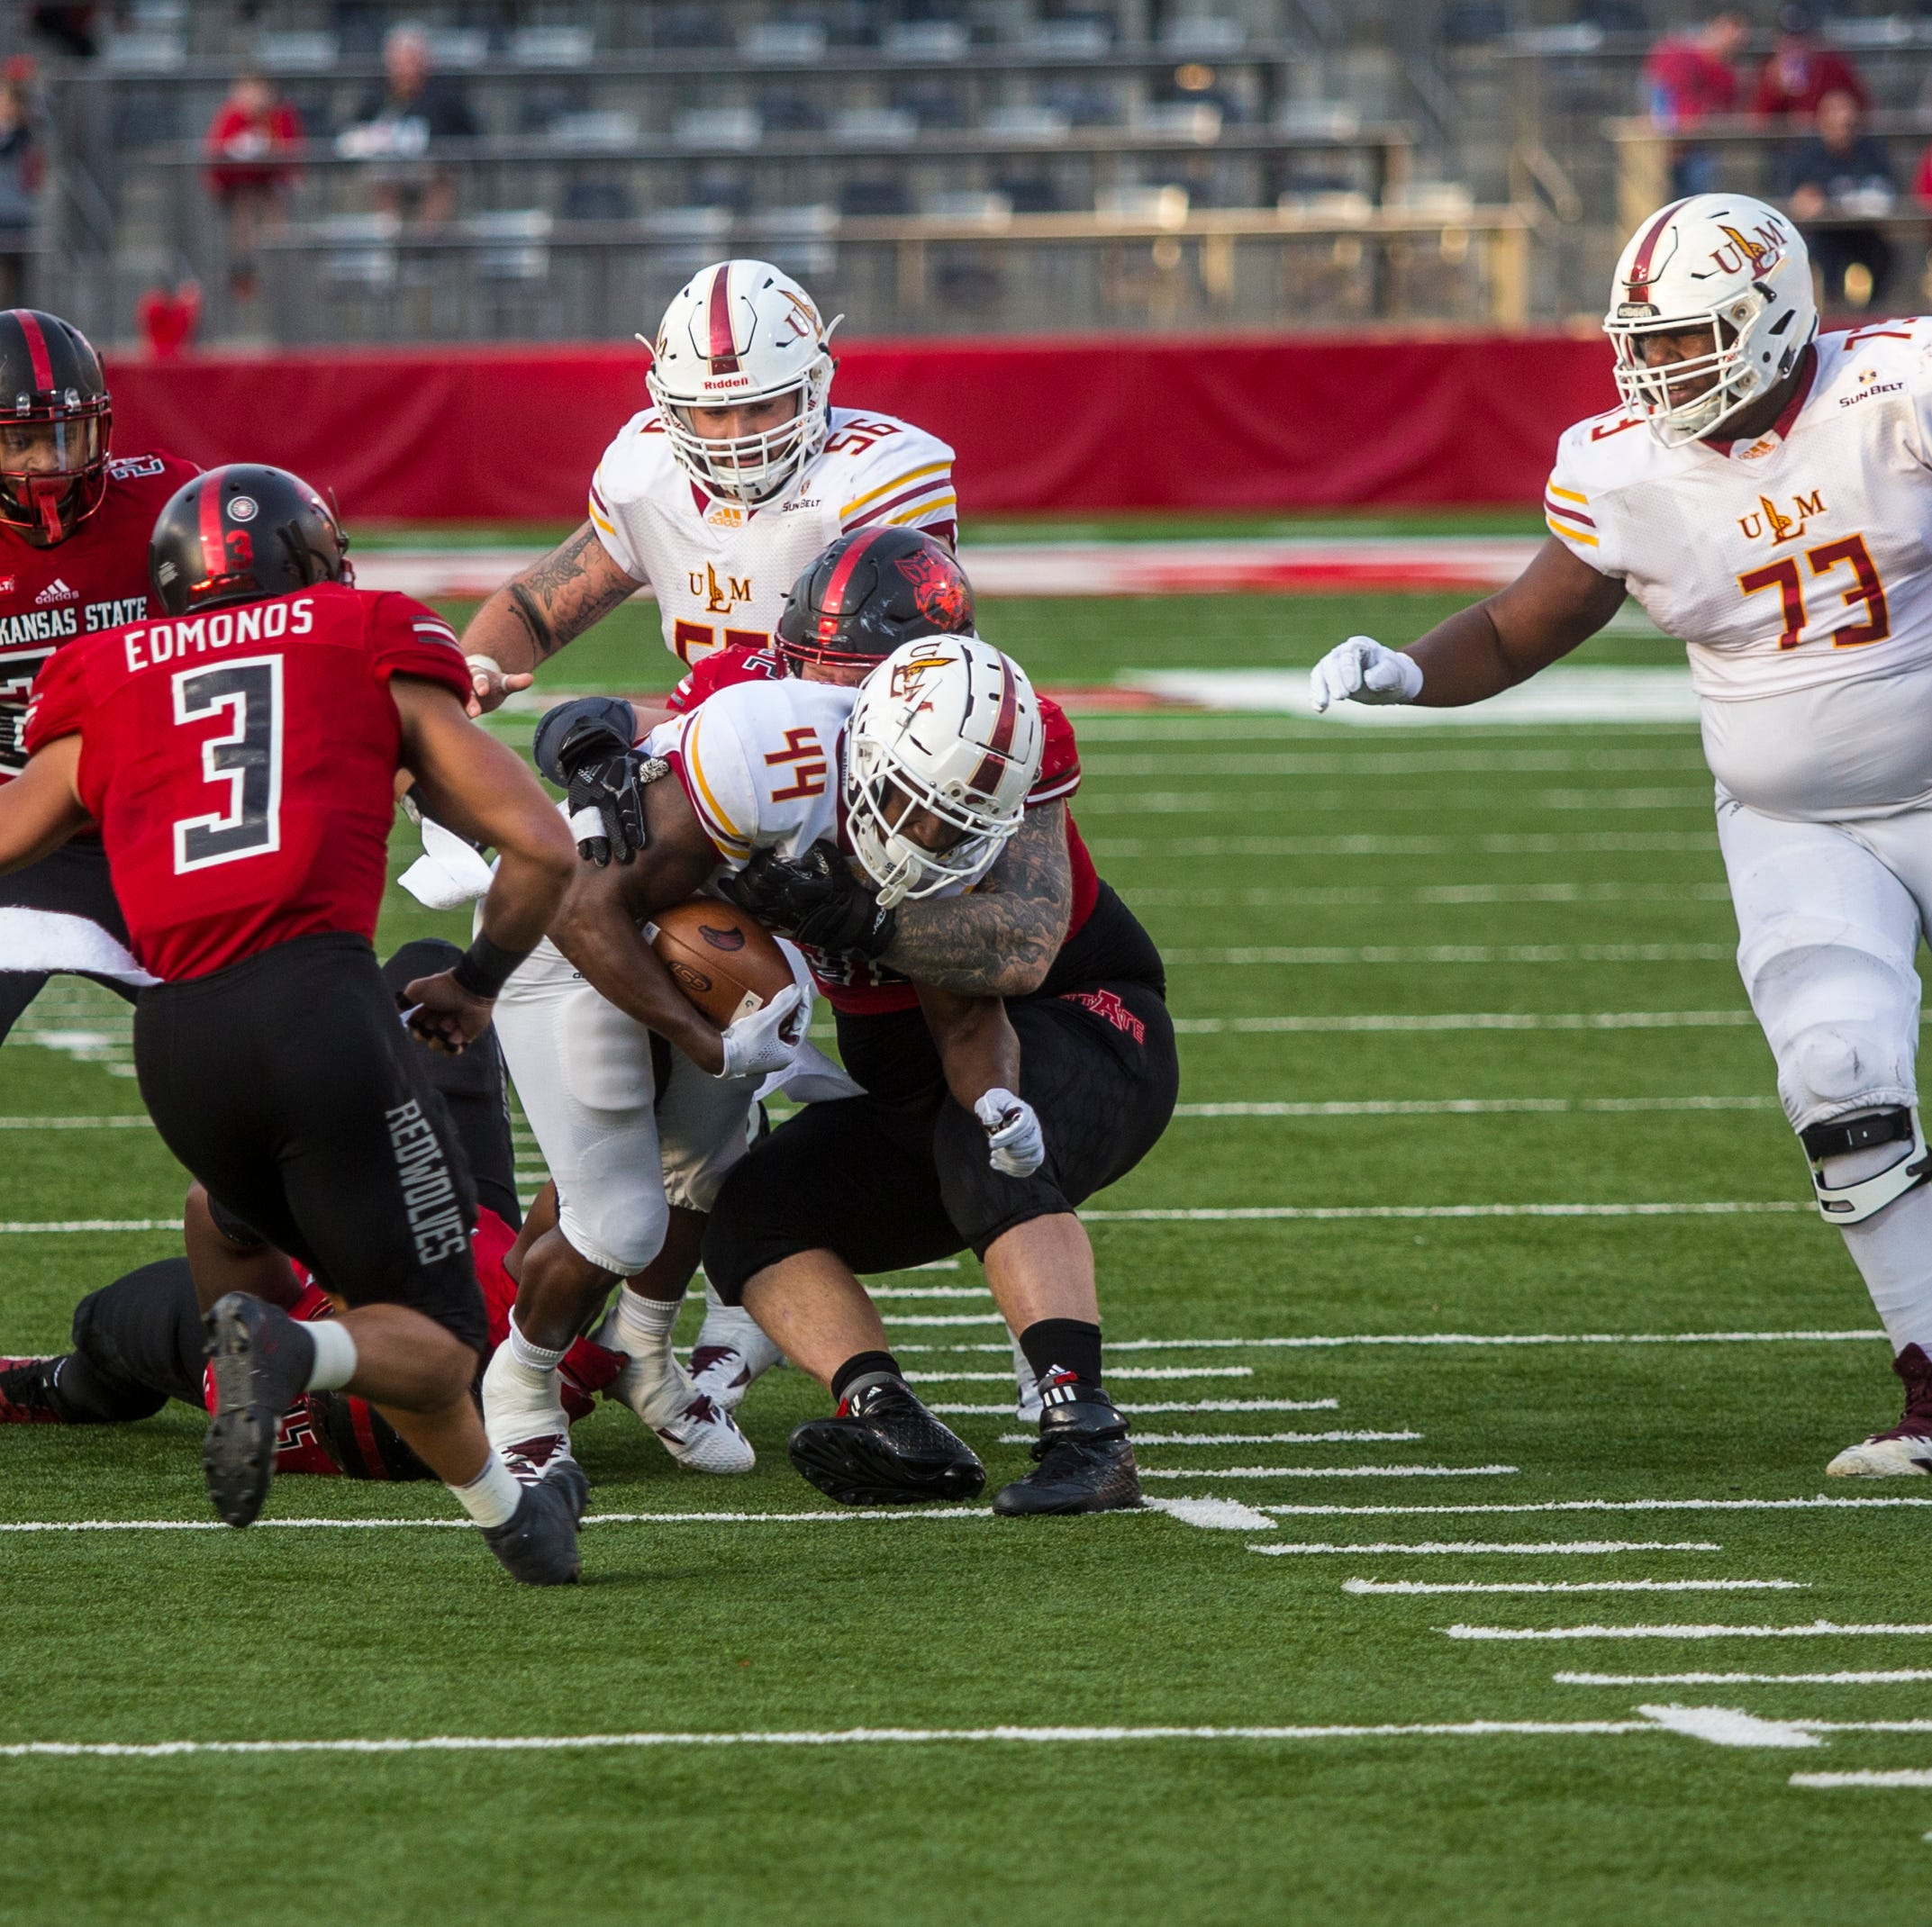 Dethroned: Arkansas State knocks Warhawks from Sun Belt perch